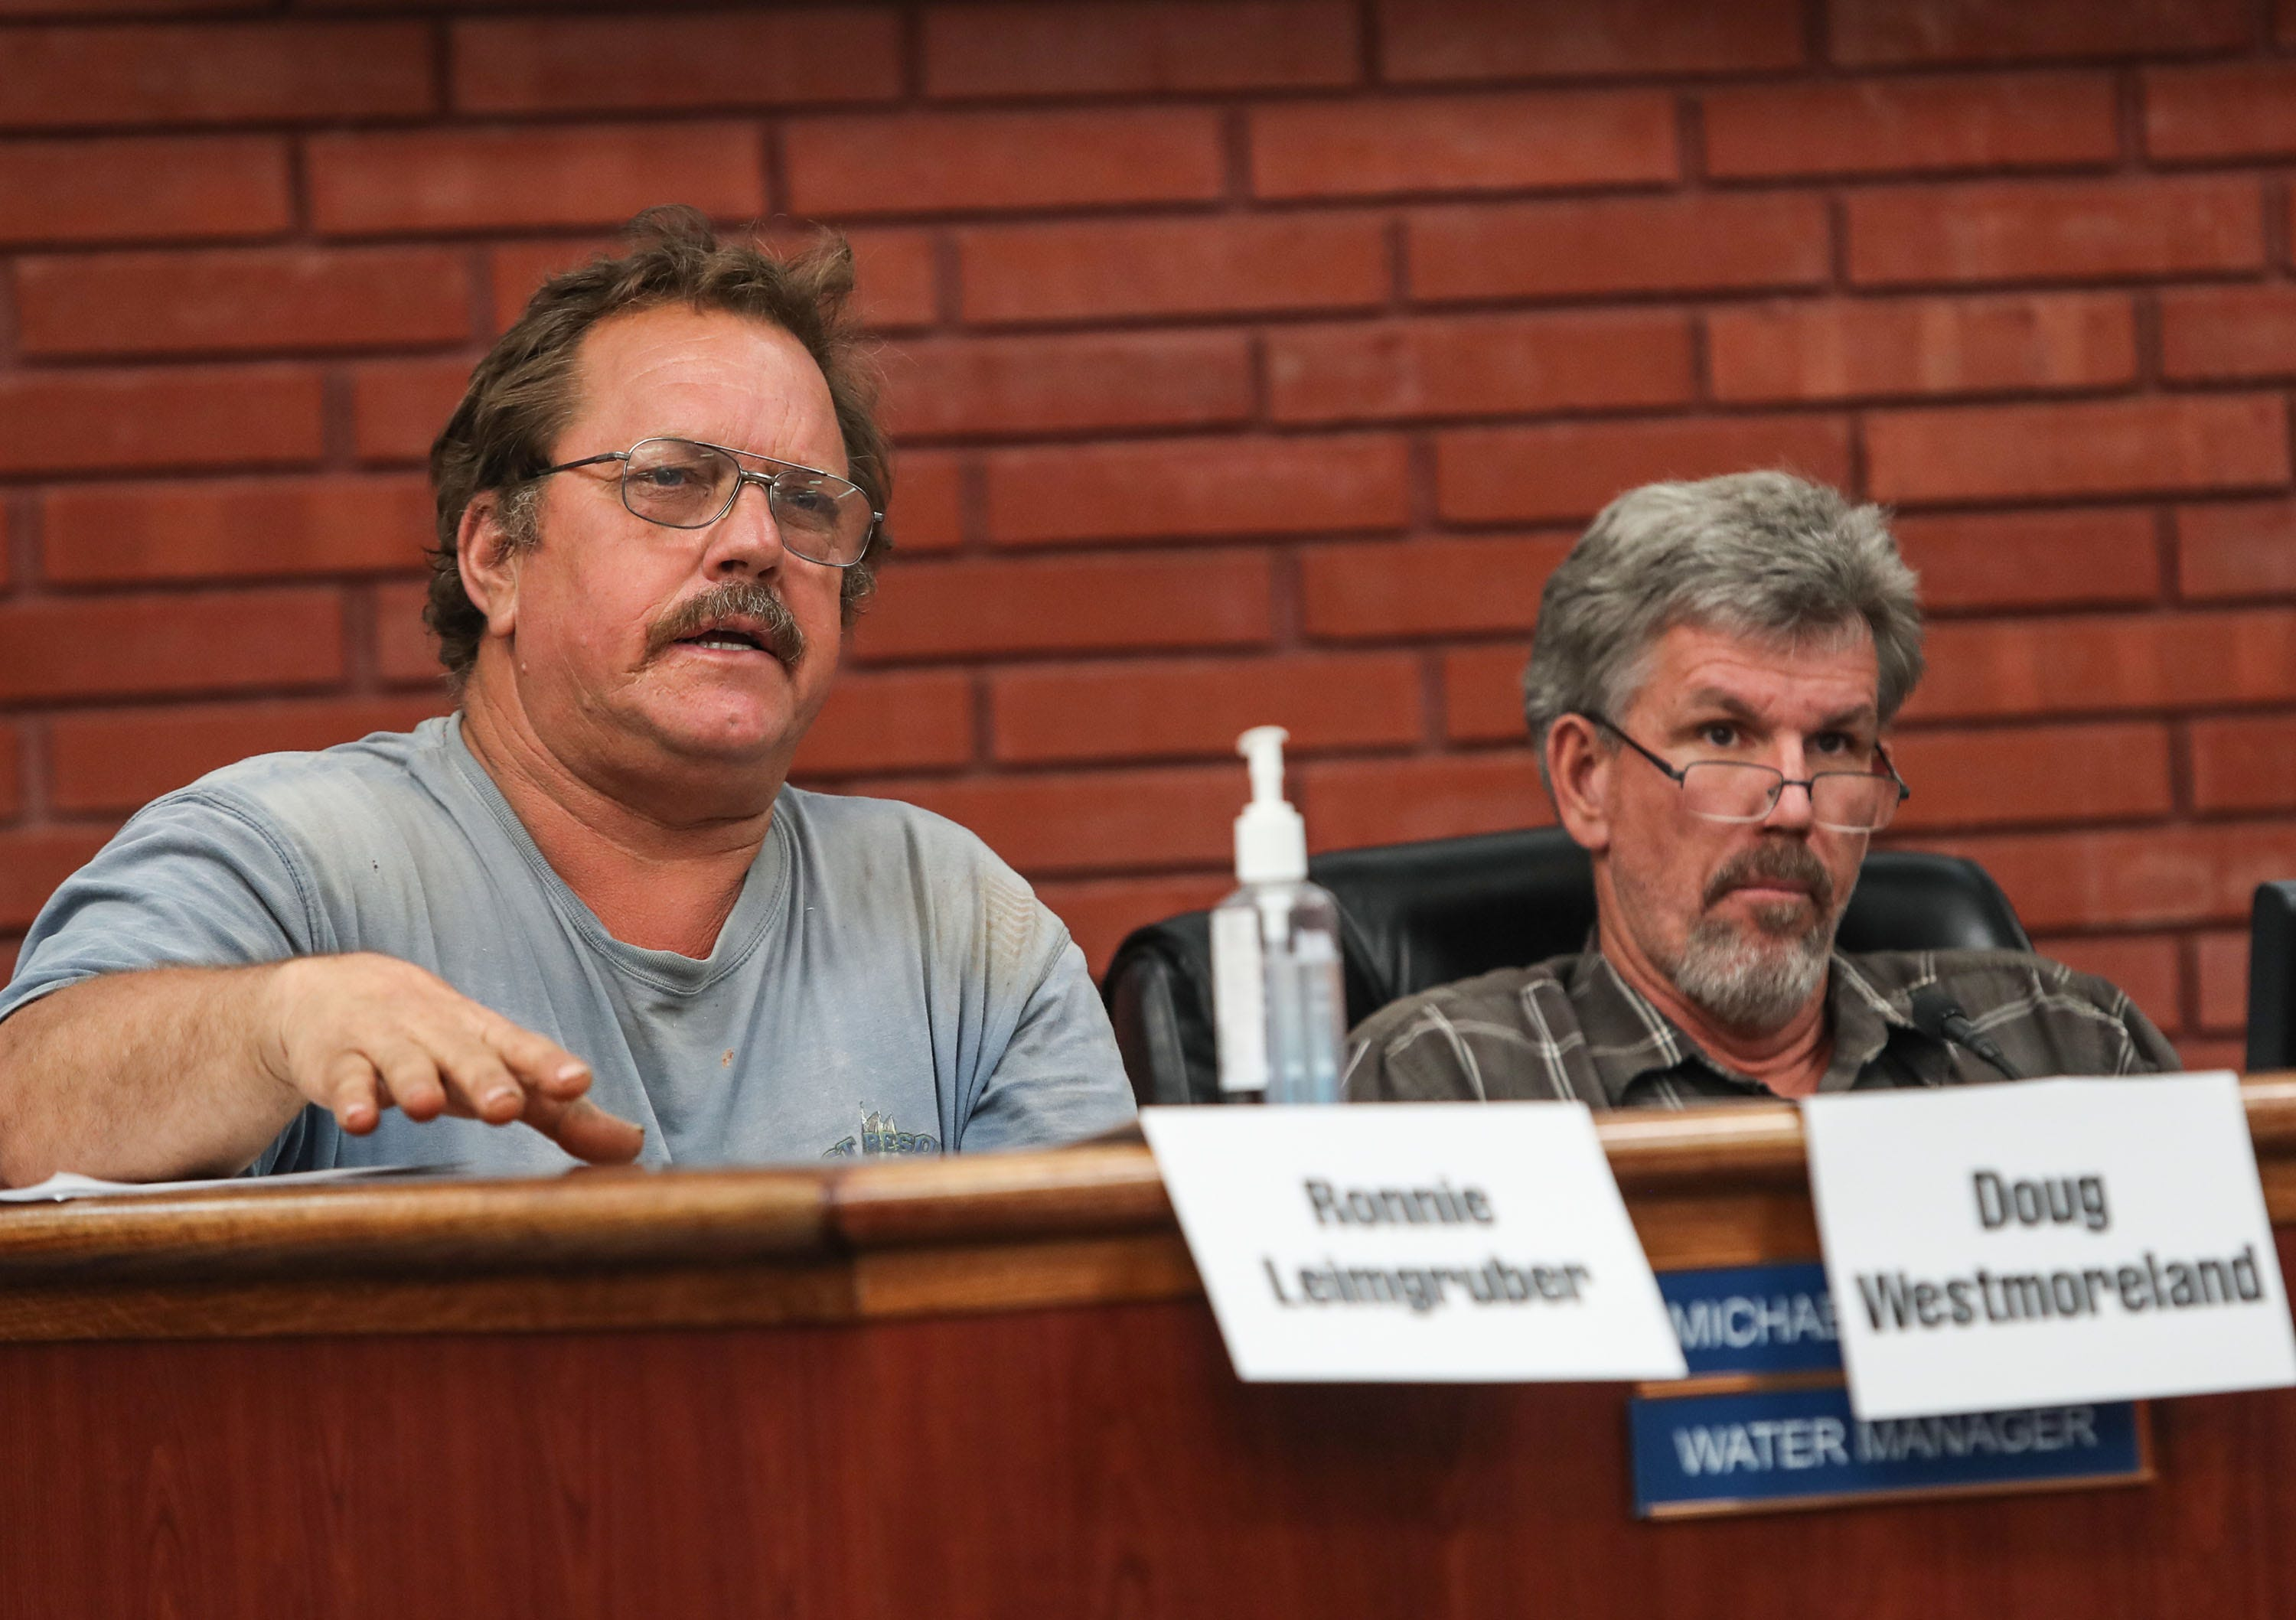 Ronnie Leimgruber, left, and Doug Westmoreland attend a meeting of the Imperial Irrigation District's Water Conservation Advisory Board in El Centro on July 12, 2018. Both men are members of the advisory board.